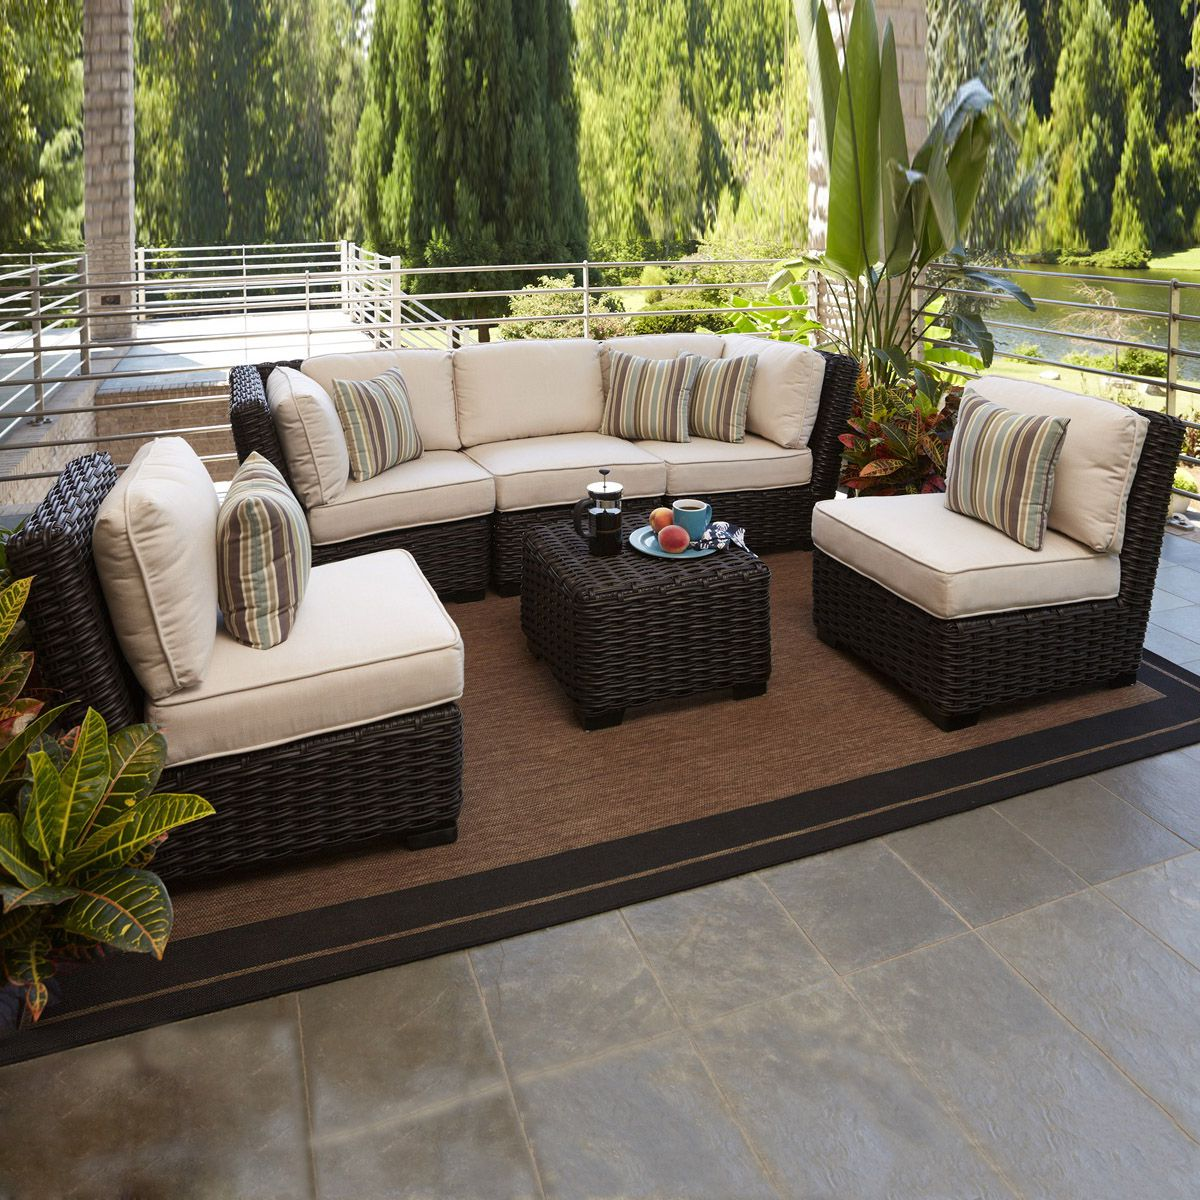 Outdoor Living Room Furniture For Your Patio Allen Roth Blaney 6 Piece Outdoor Conversation Set 3lg 2023